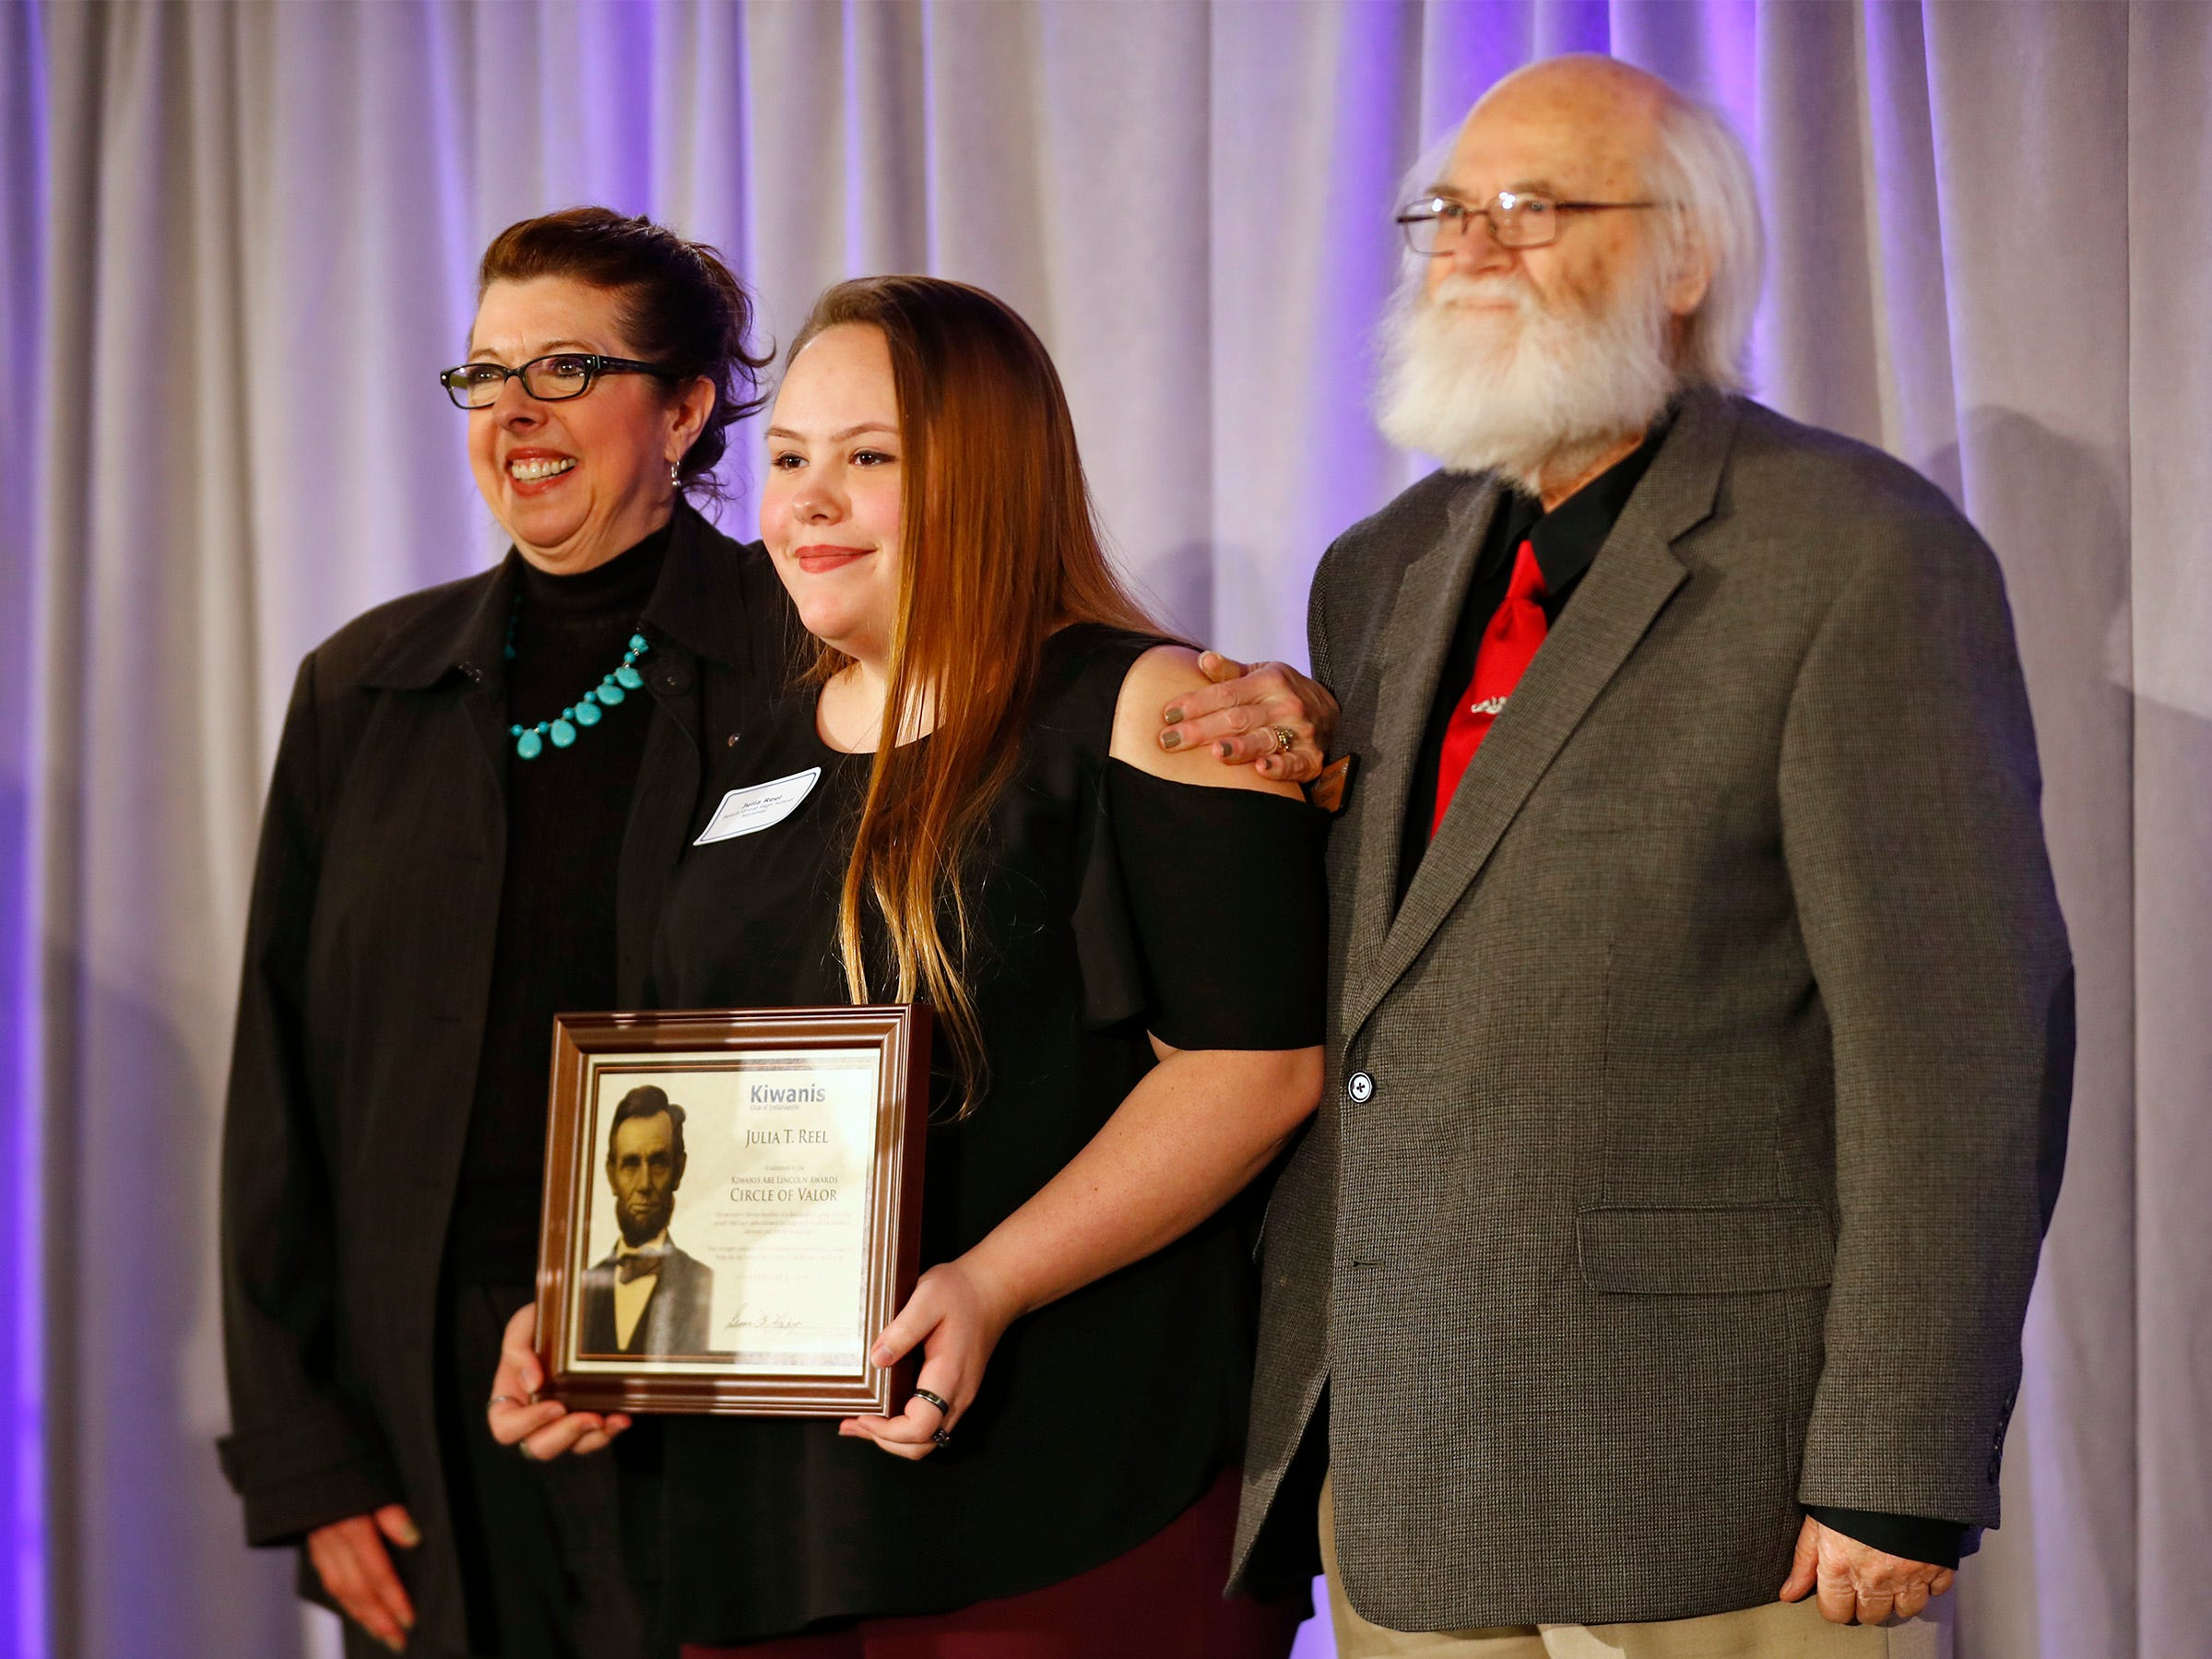 Beech Grove High School student Julia Reel, center, is honored with a Circle of Valor award at the 44th Annual Abe Lincoln Awards Program, Friday, Feb. 8, 2019. The Kiwanis Club of Indianapolis program was held at Ivy Tech Community College.  20 high school student were honored at the annual event which celebrates overcoming adversity in life to succeed.